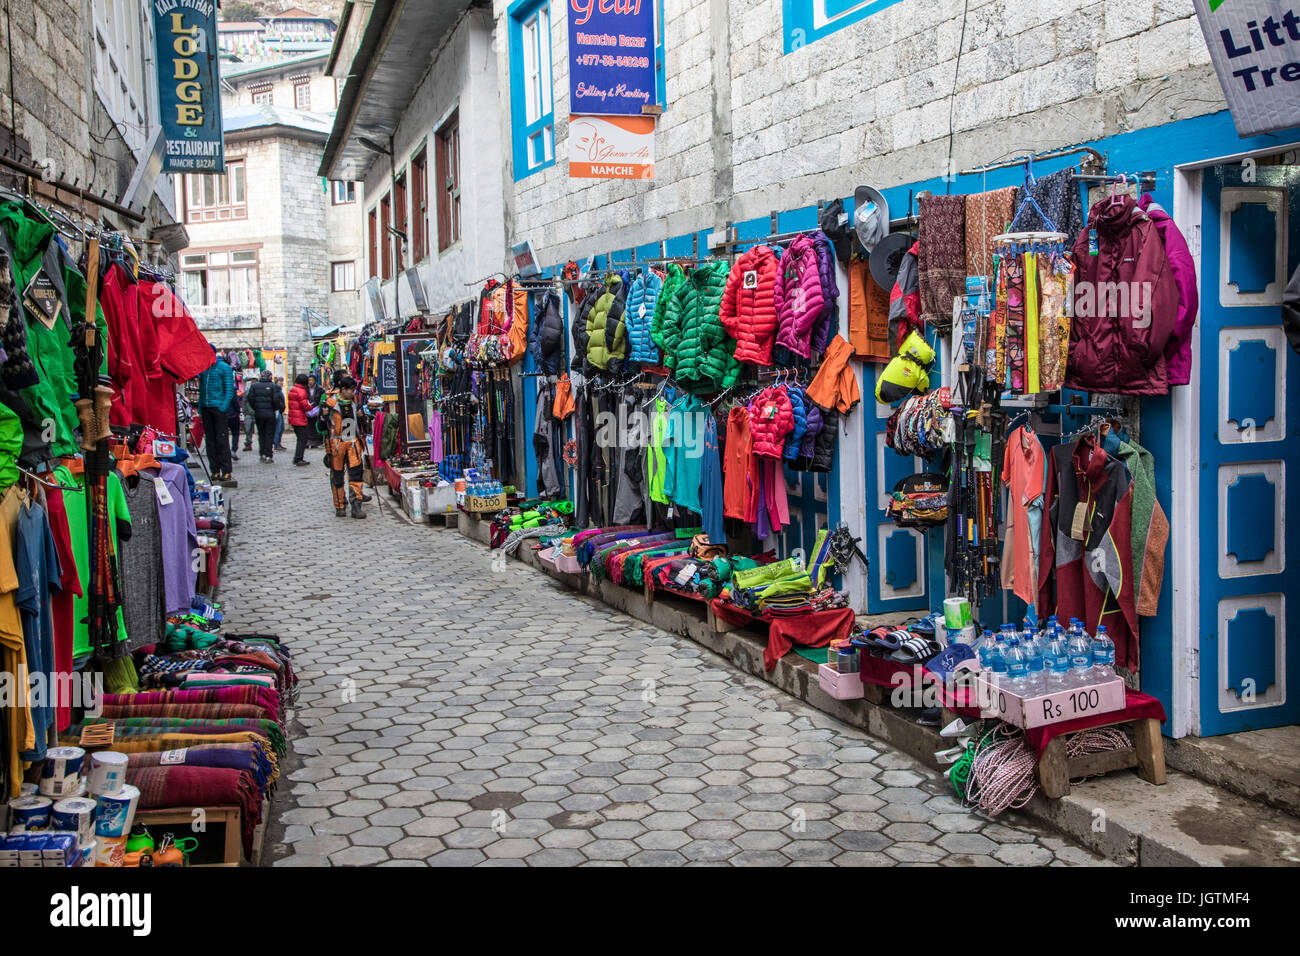 Climbing, trekking, and outdoor gear included in the any thing you need market in Namche Bazaar on the way to Mt. - Stock Image